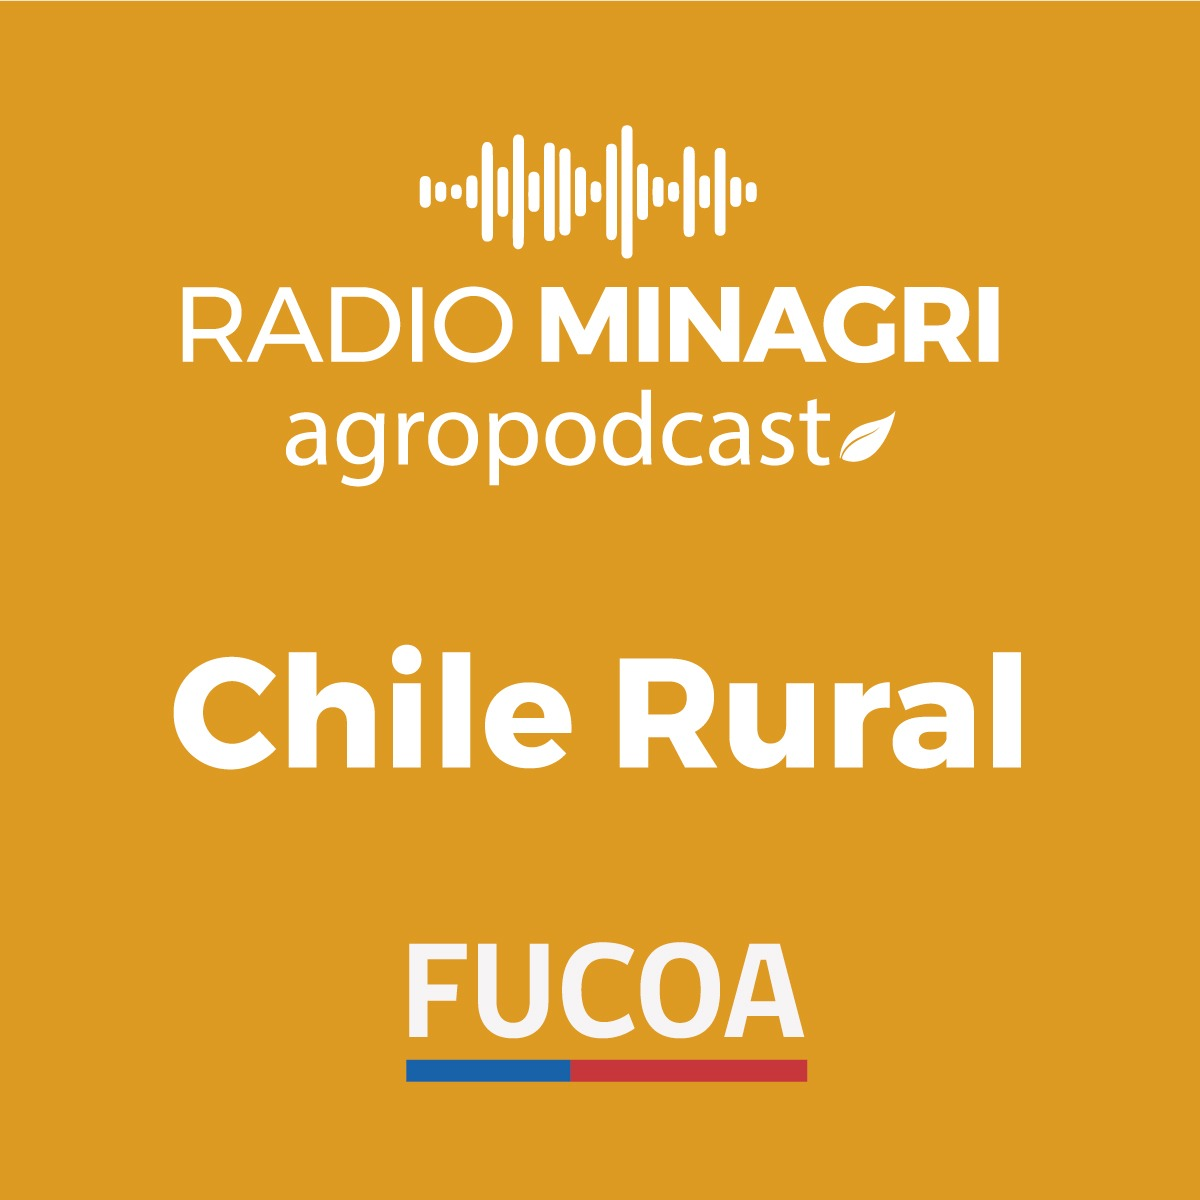 Chile Rural – Episodio 9: Parques Nacionales Río Clarillo y Salar de Huasco